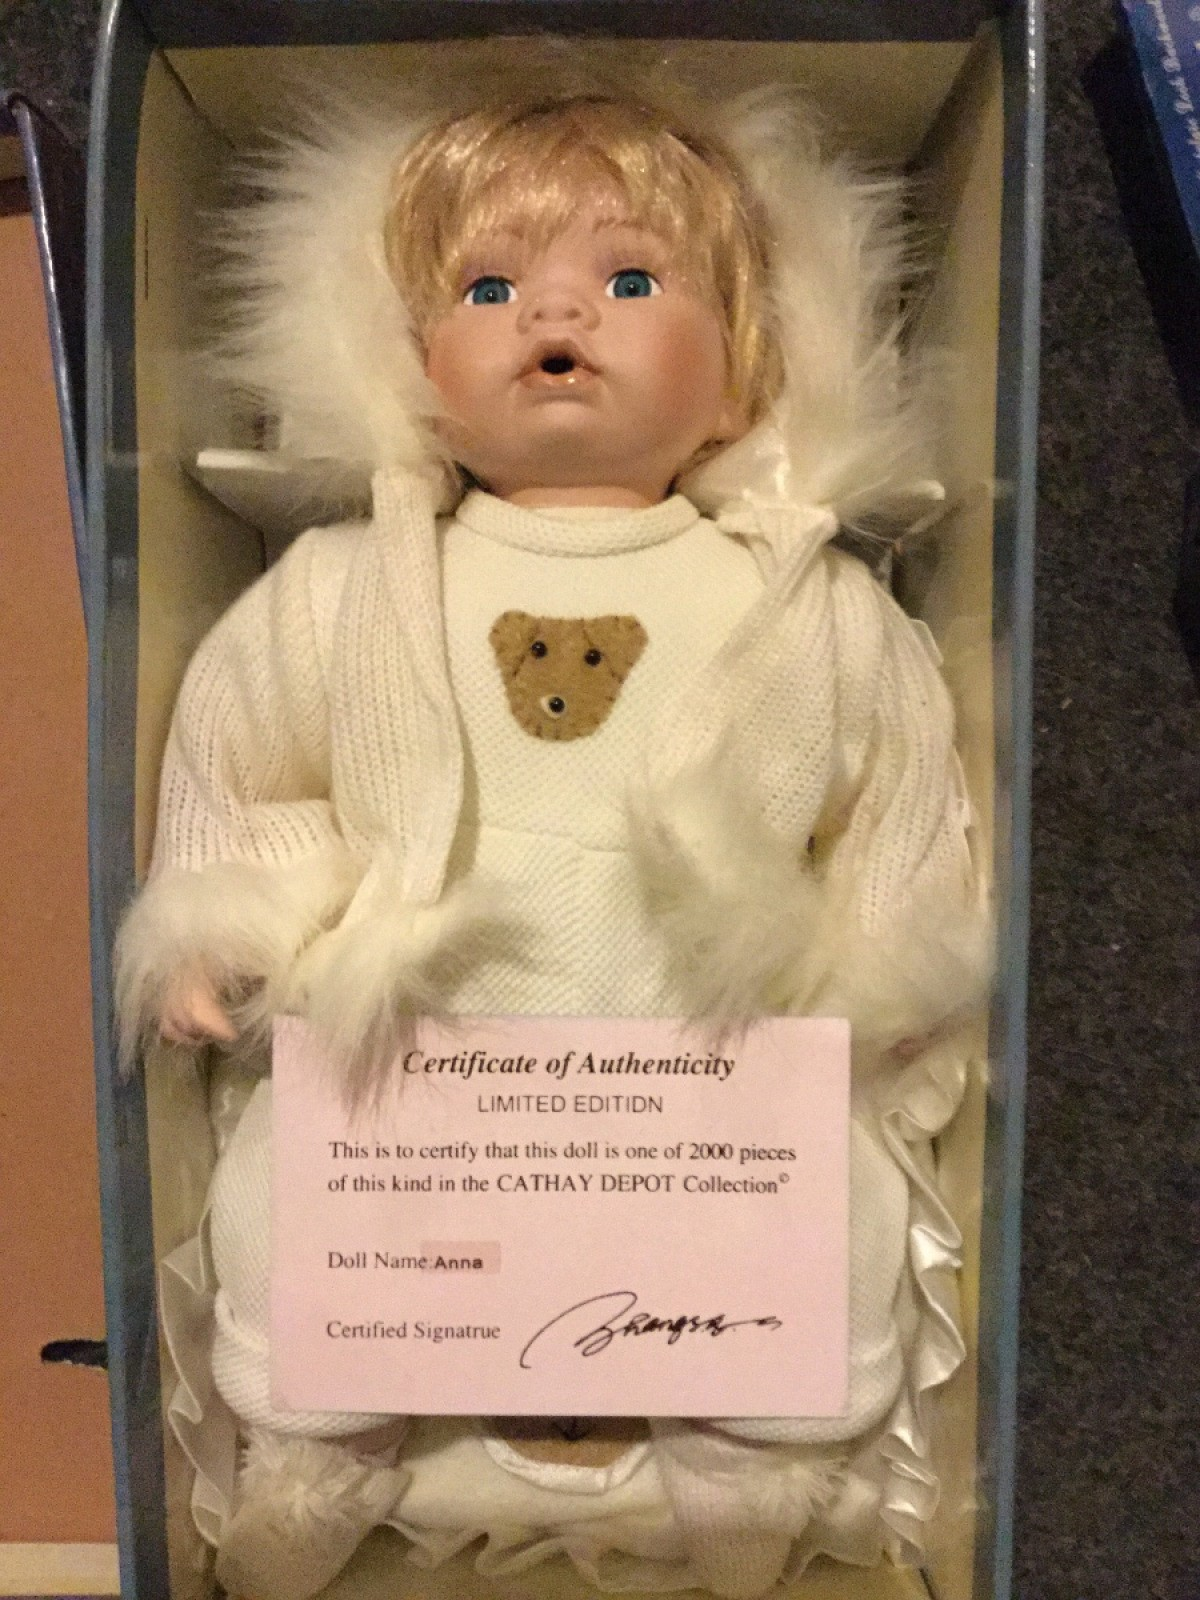 Value of Cathay Collection Porcelain Doll | ThriftyFun